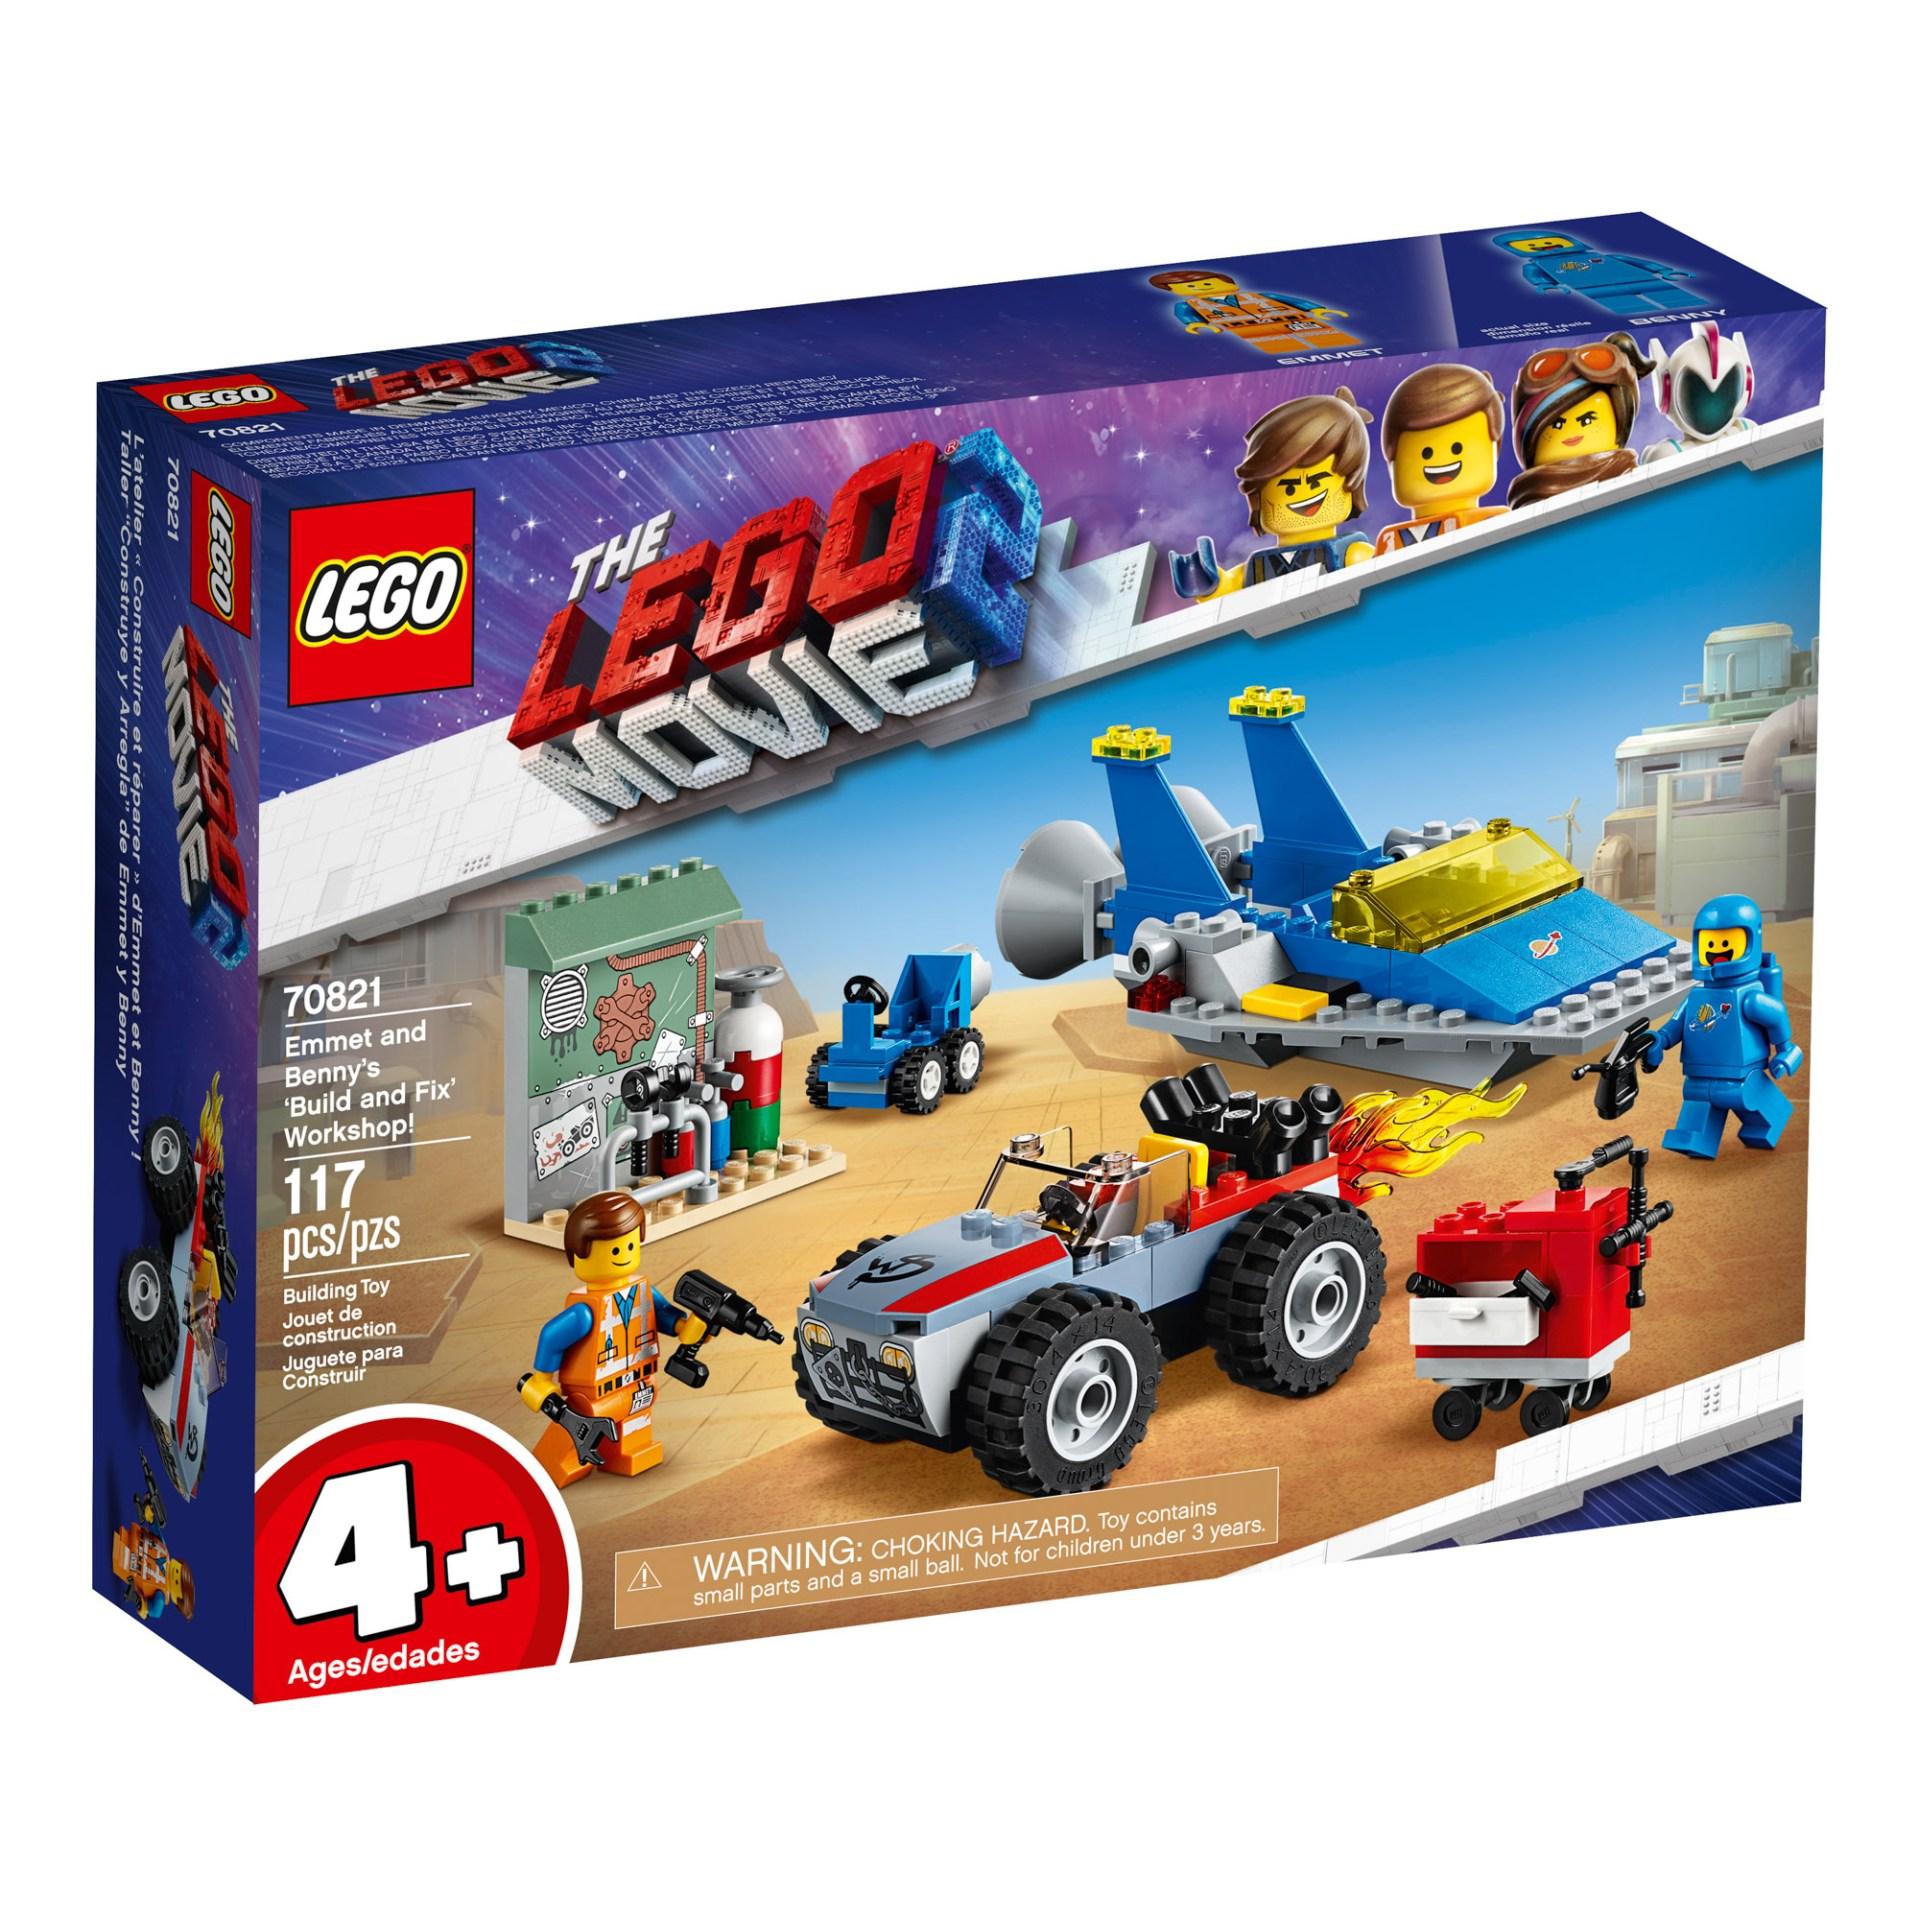 70821 — Emmet and Benny's 'Build and Fix Workshop'